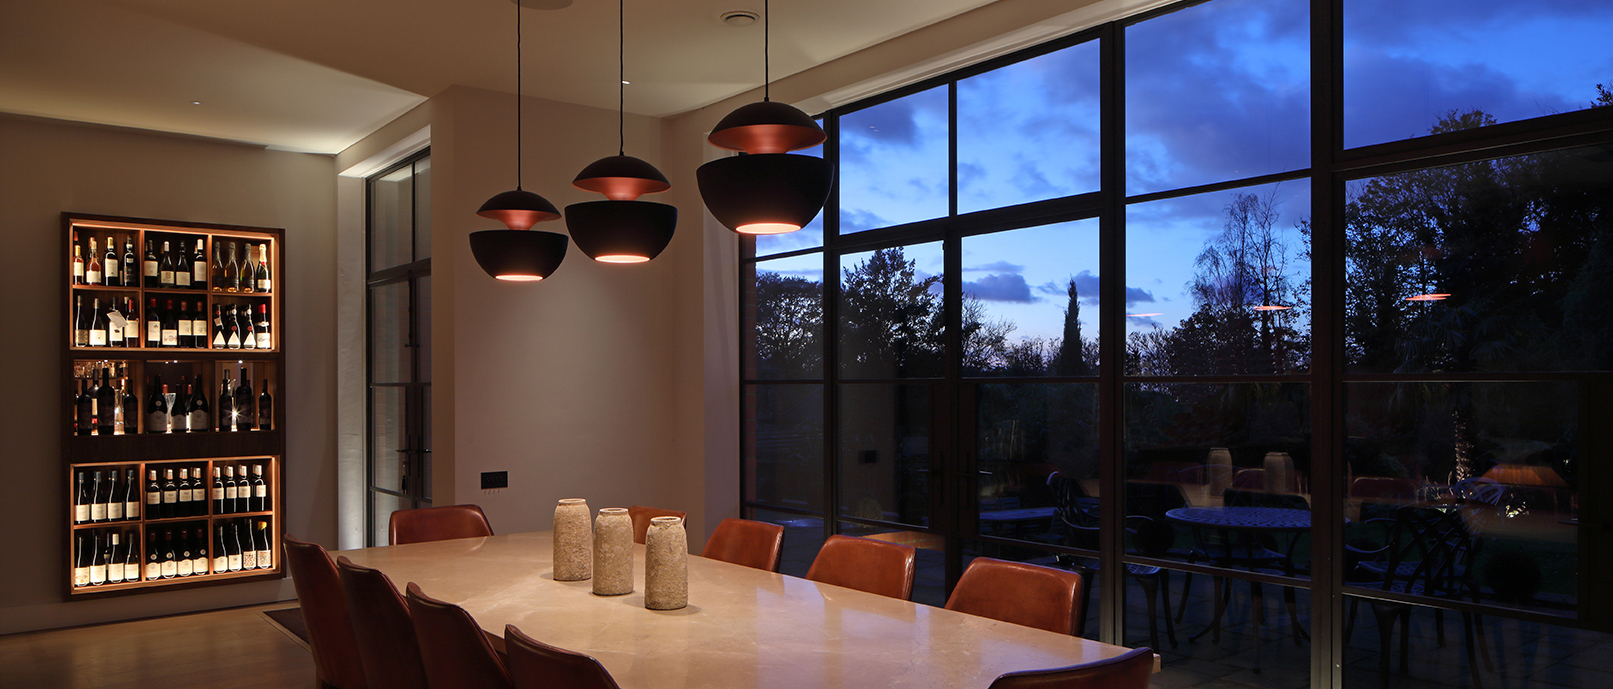 Elegant dining room lighting with view, pendants and wine rack